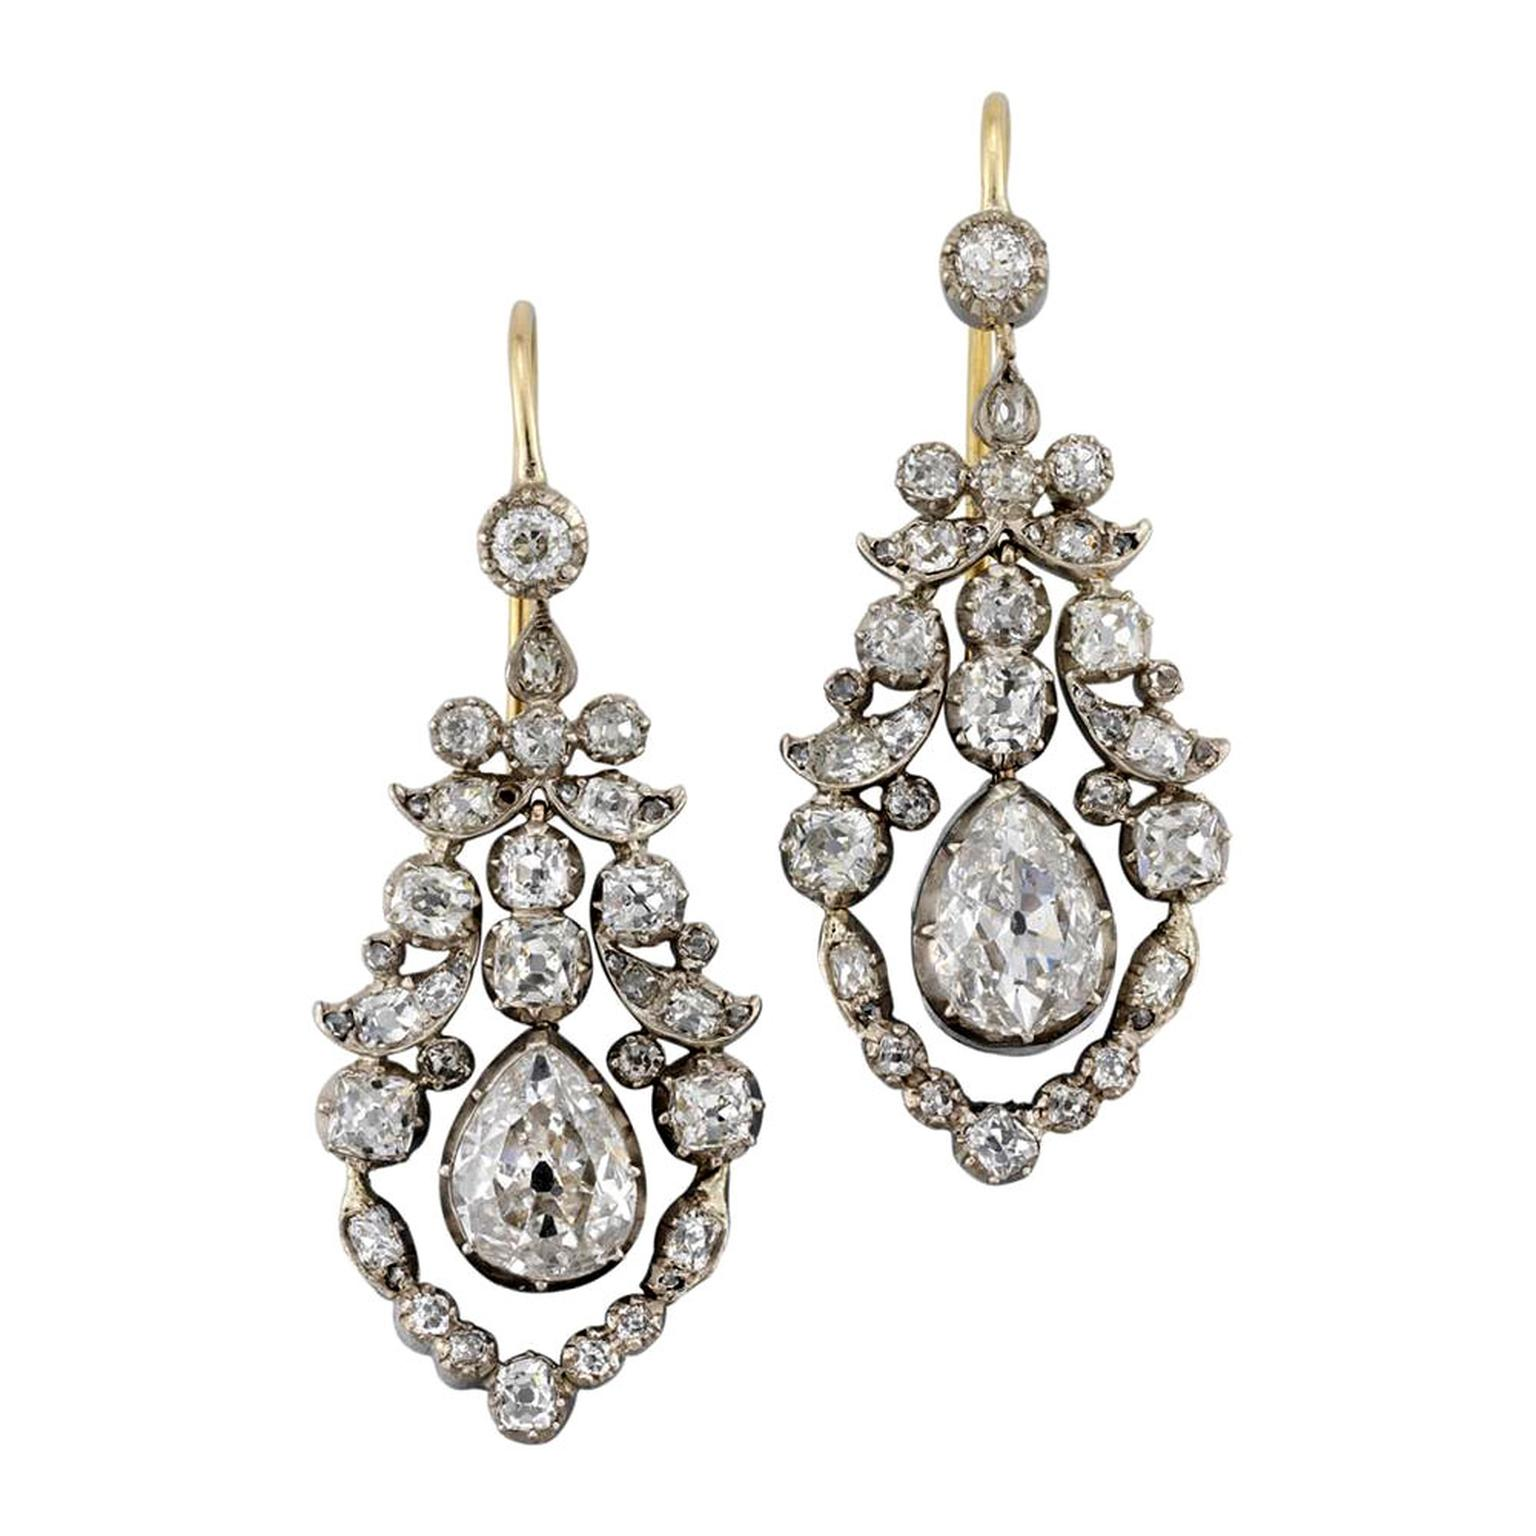 Bentley & Skinner late Georgian diamond earrings